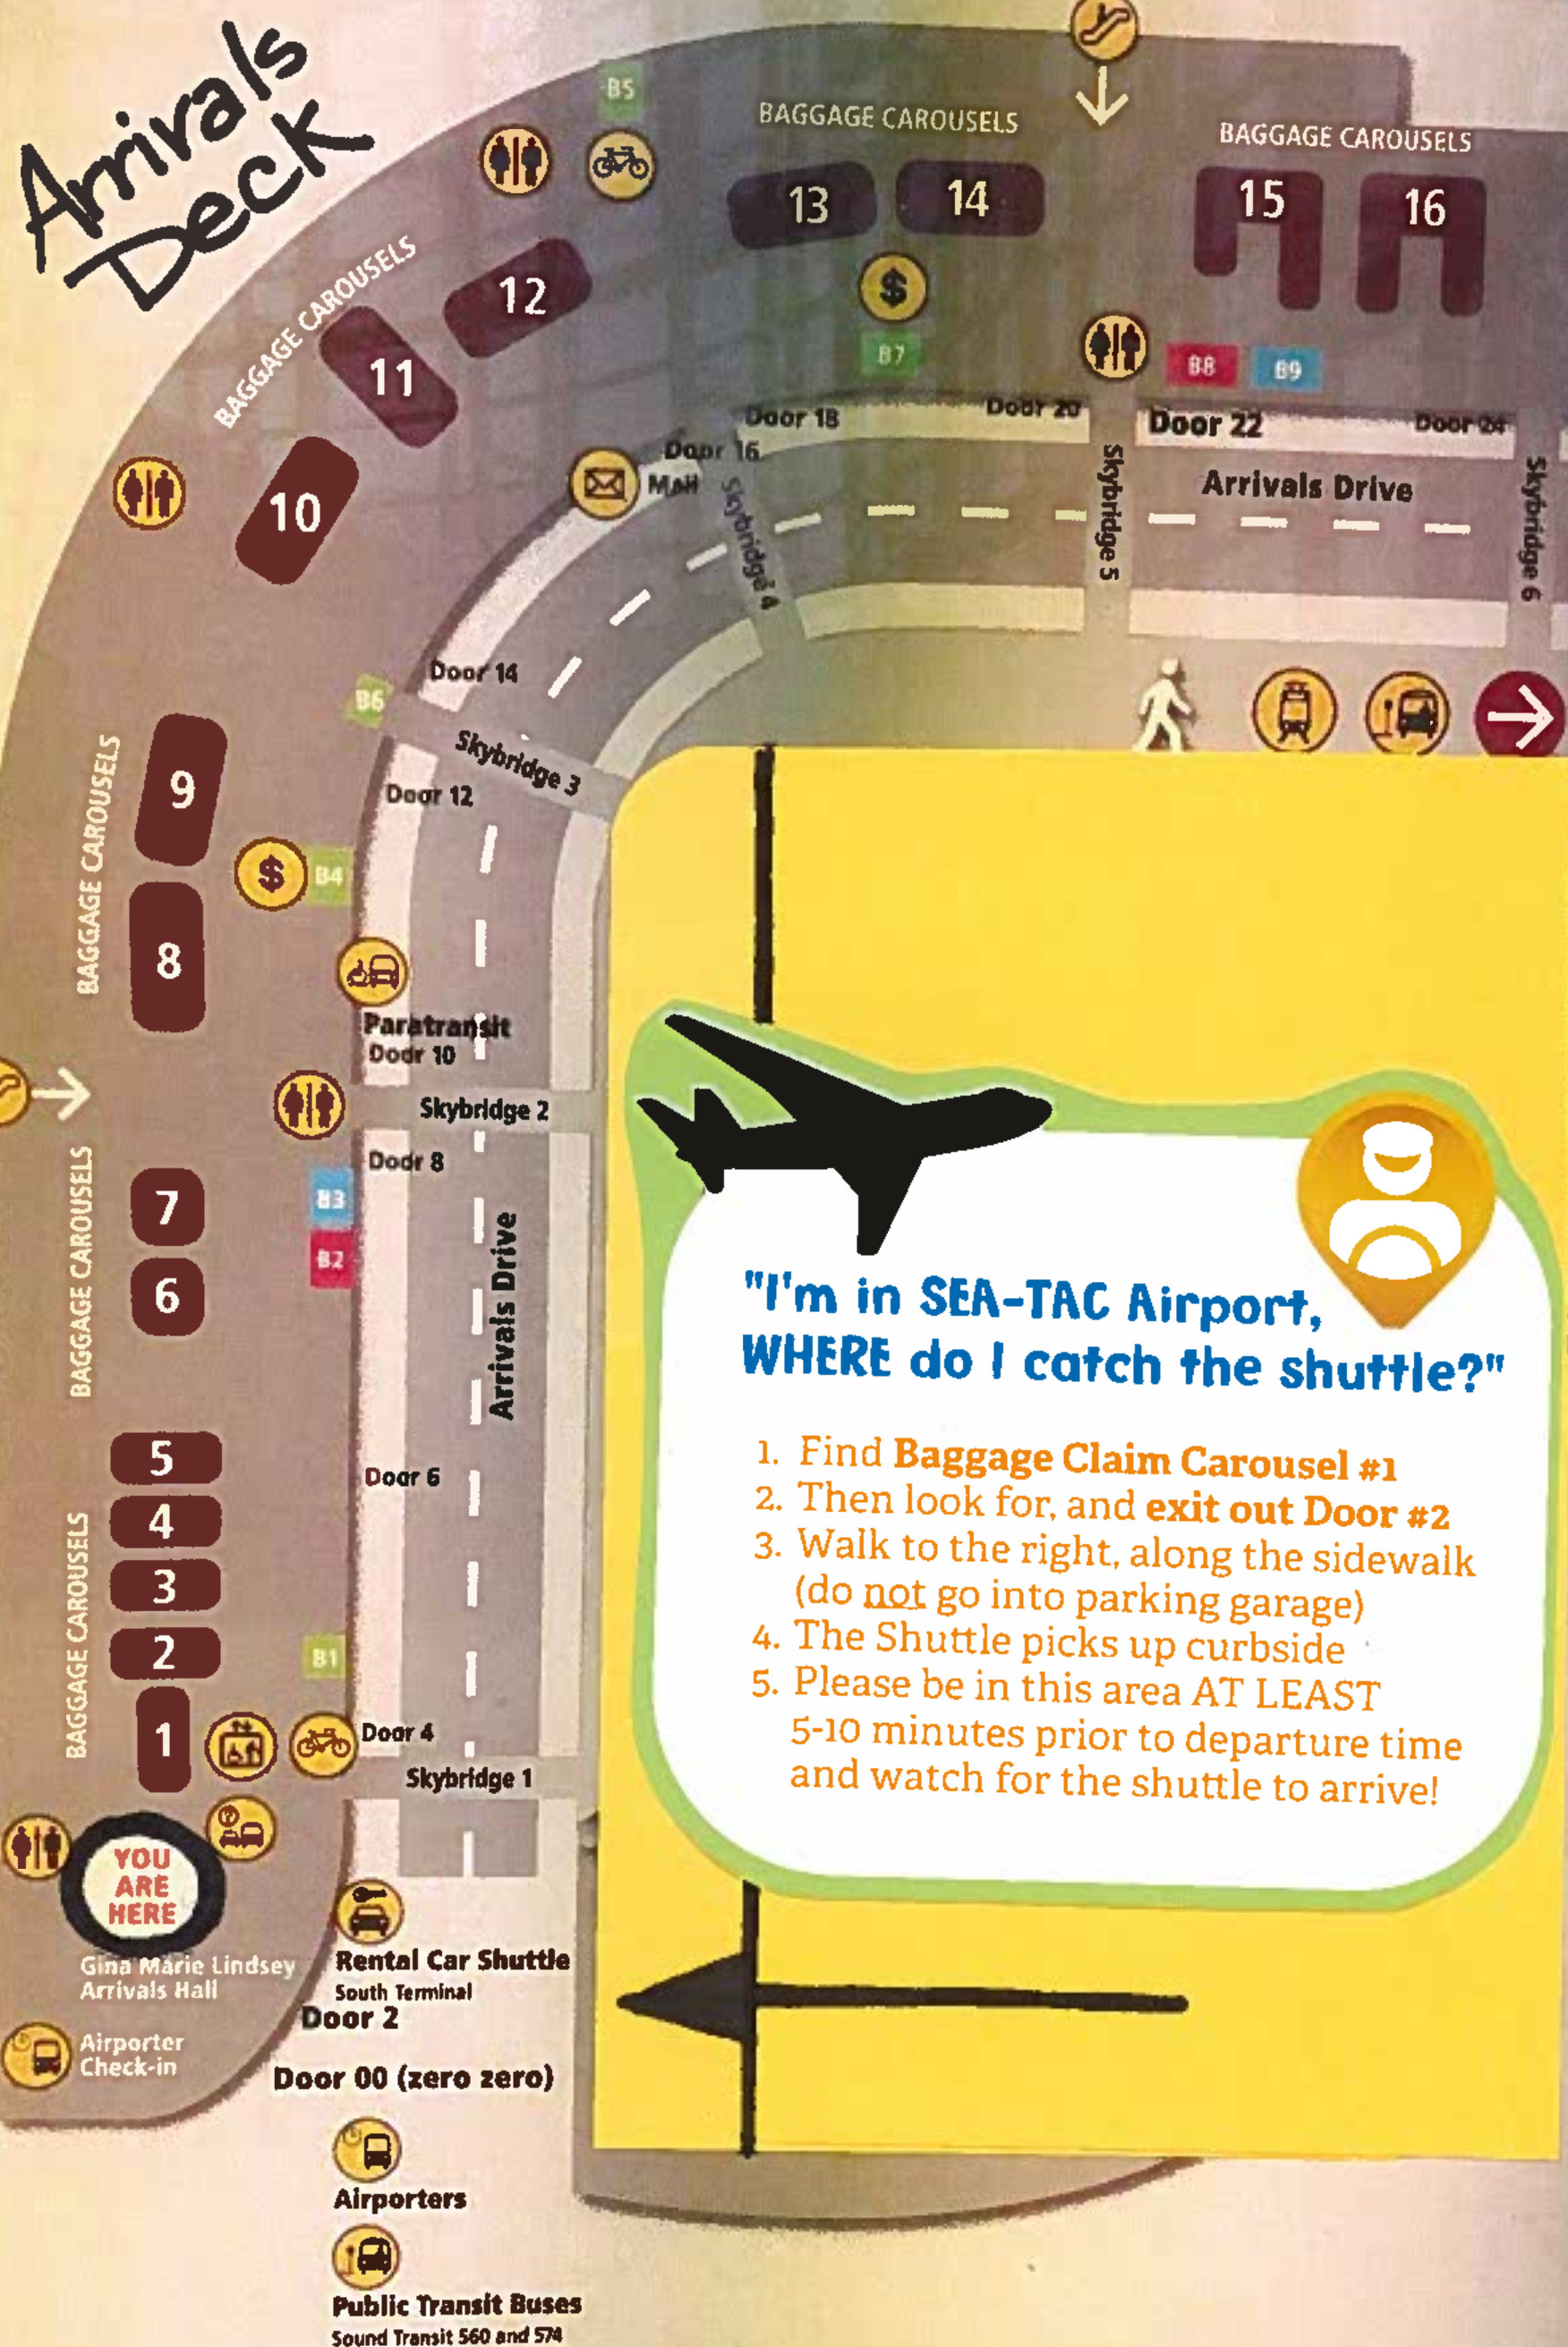 Wenatchee Valley Shuttle - Shuttling Between Sea-Tac and